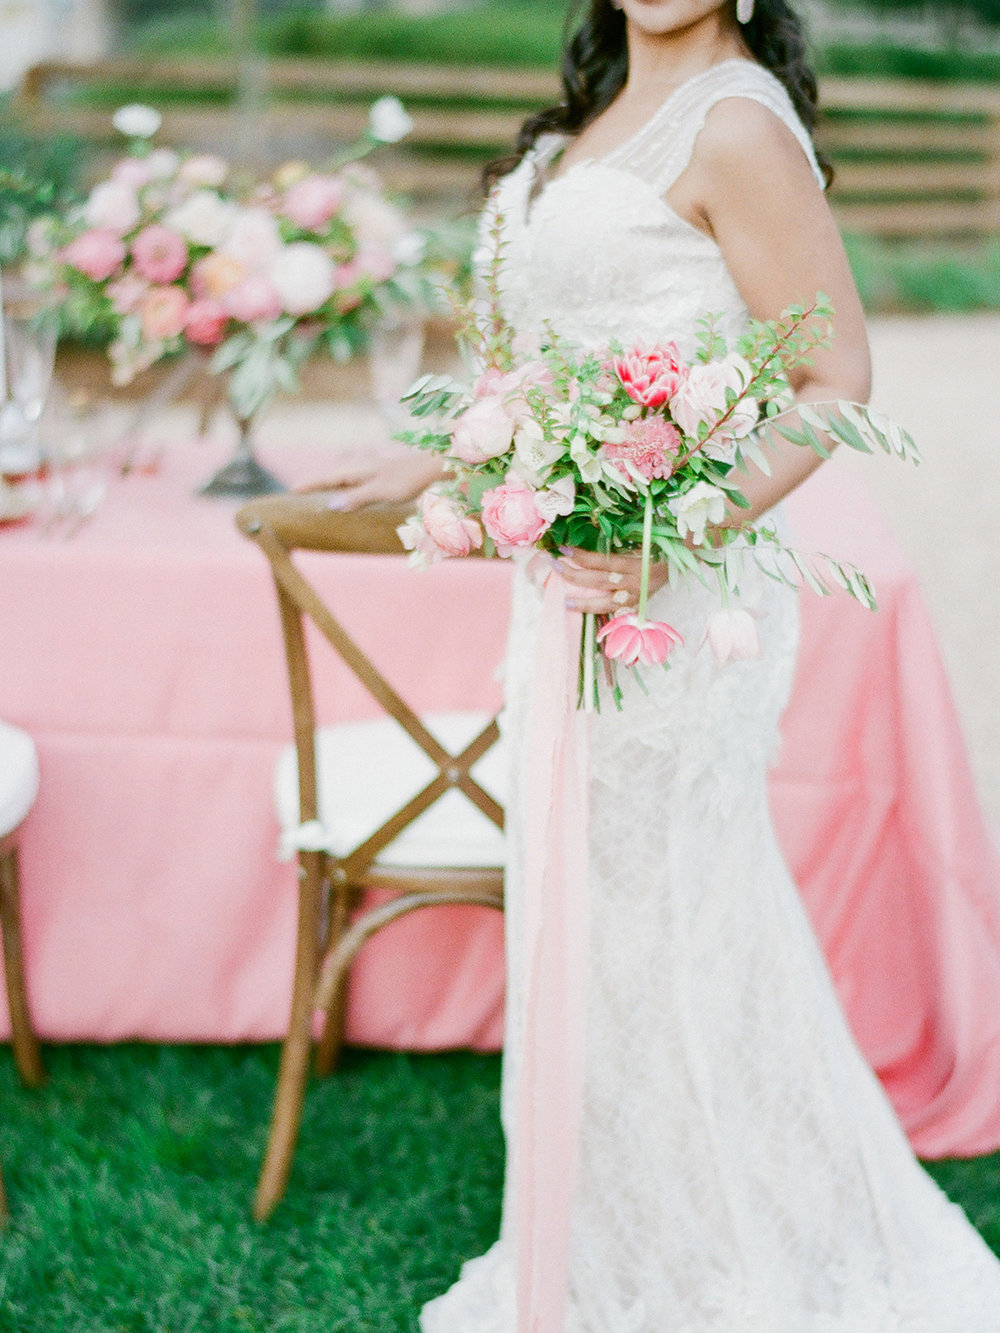 Pretty pink garden wedding bouquet, wedding dress, and table inspo